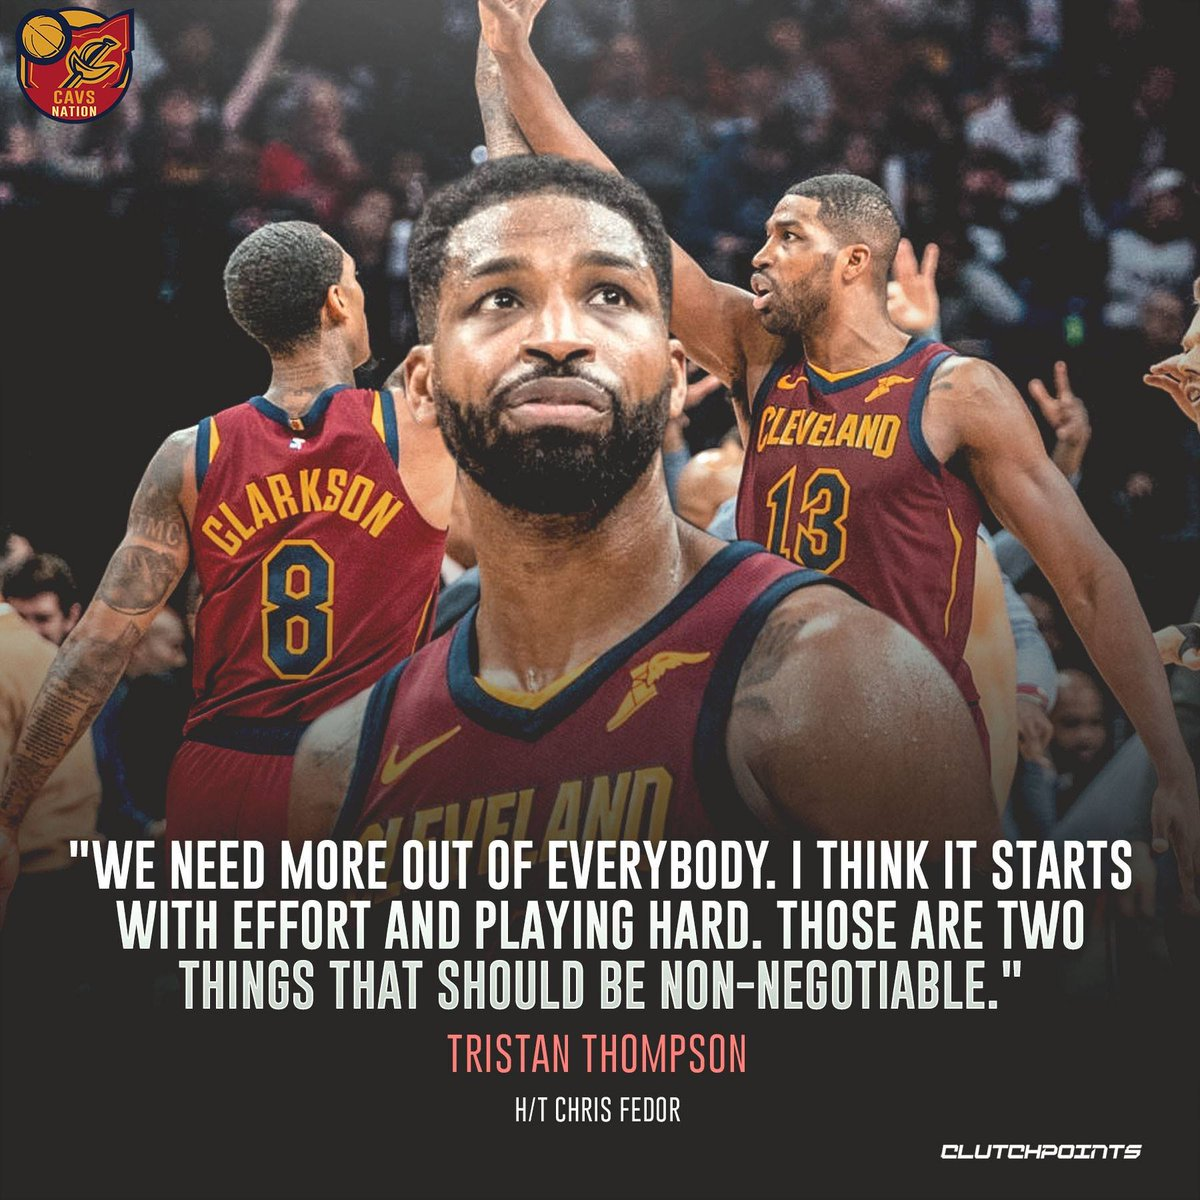 Never doubt hardwork. It will always pay off 👍 #Cavs #BeTheFight